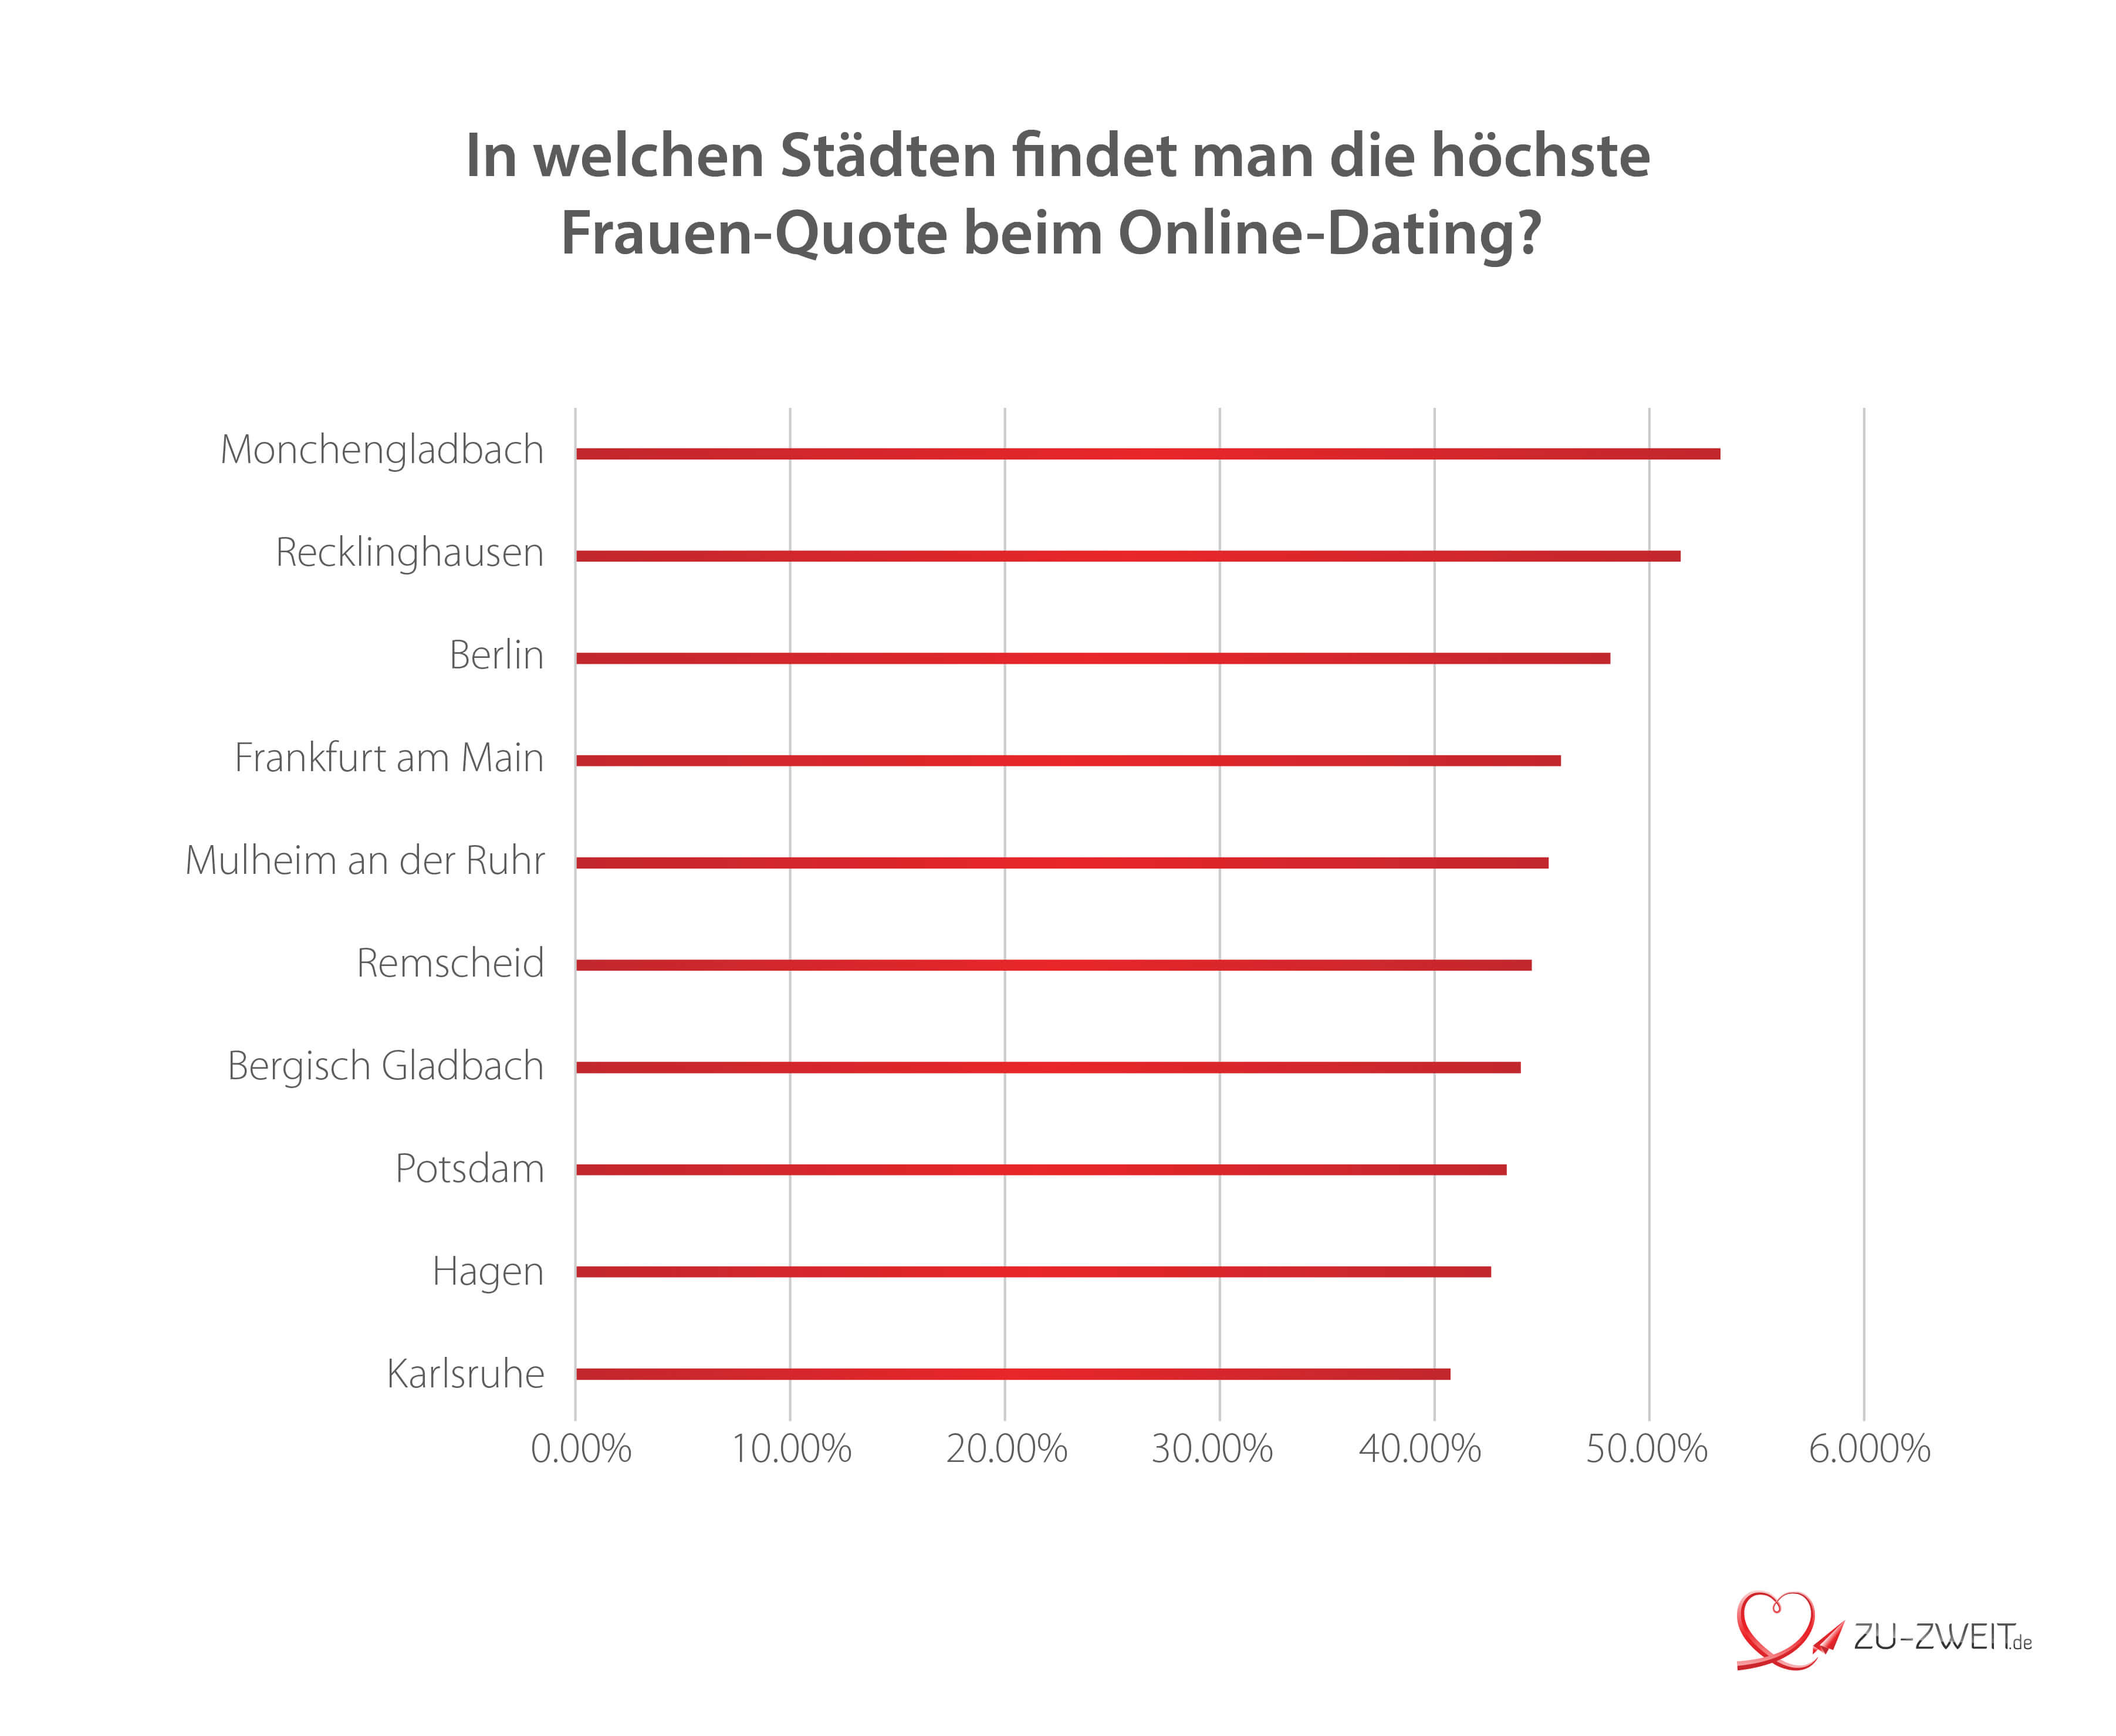 Studien über online-dating